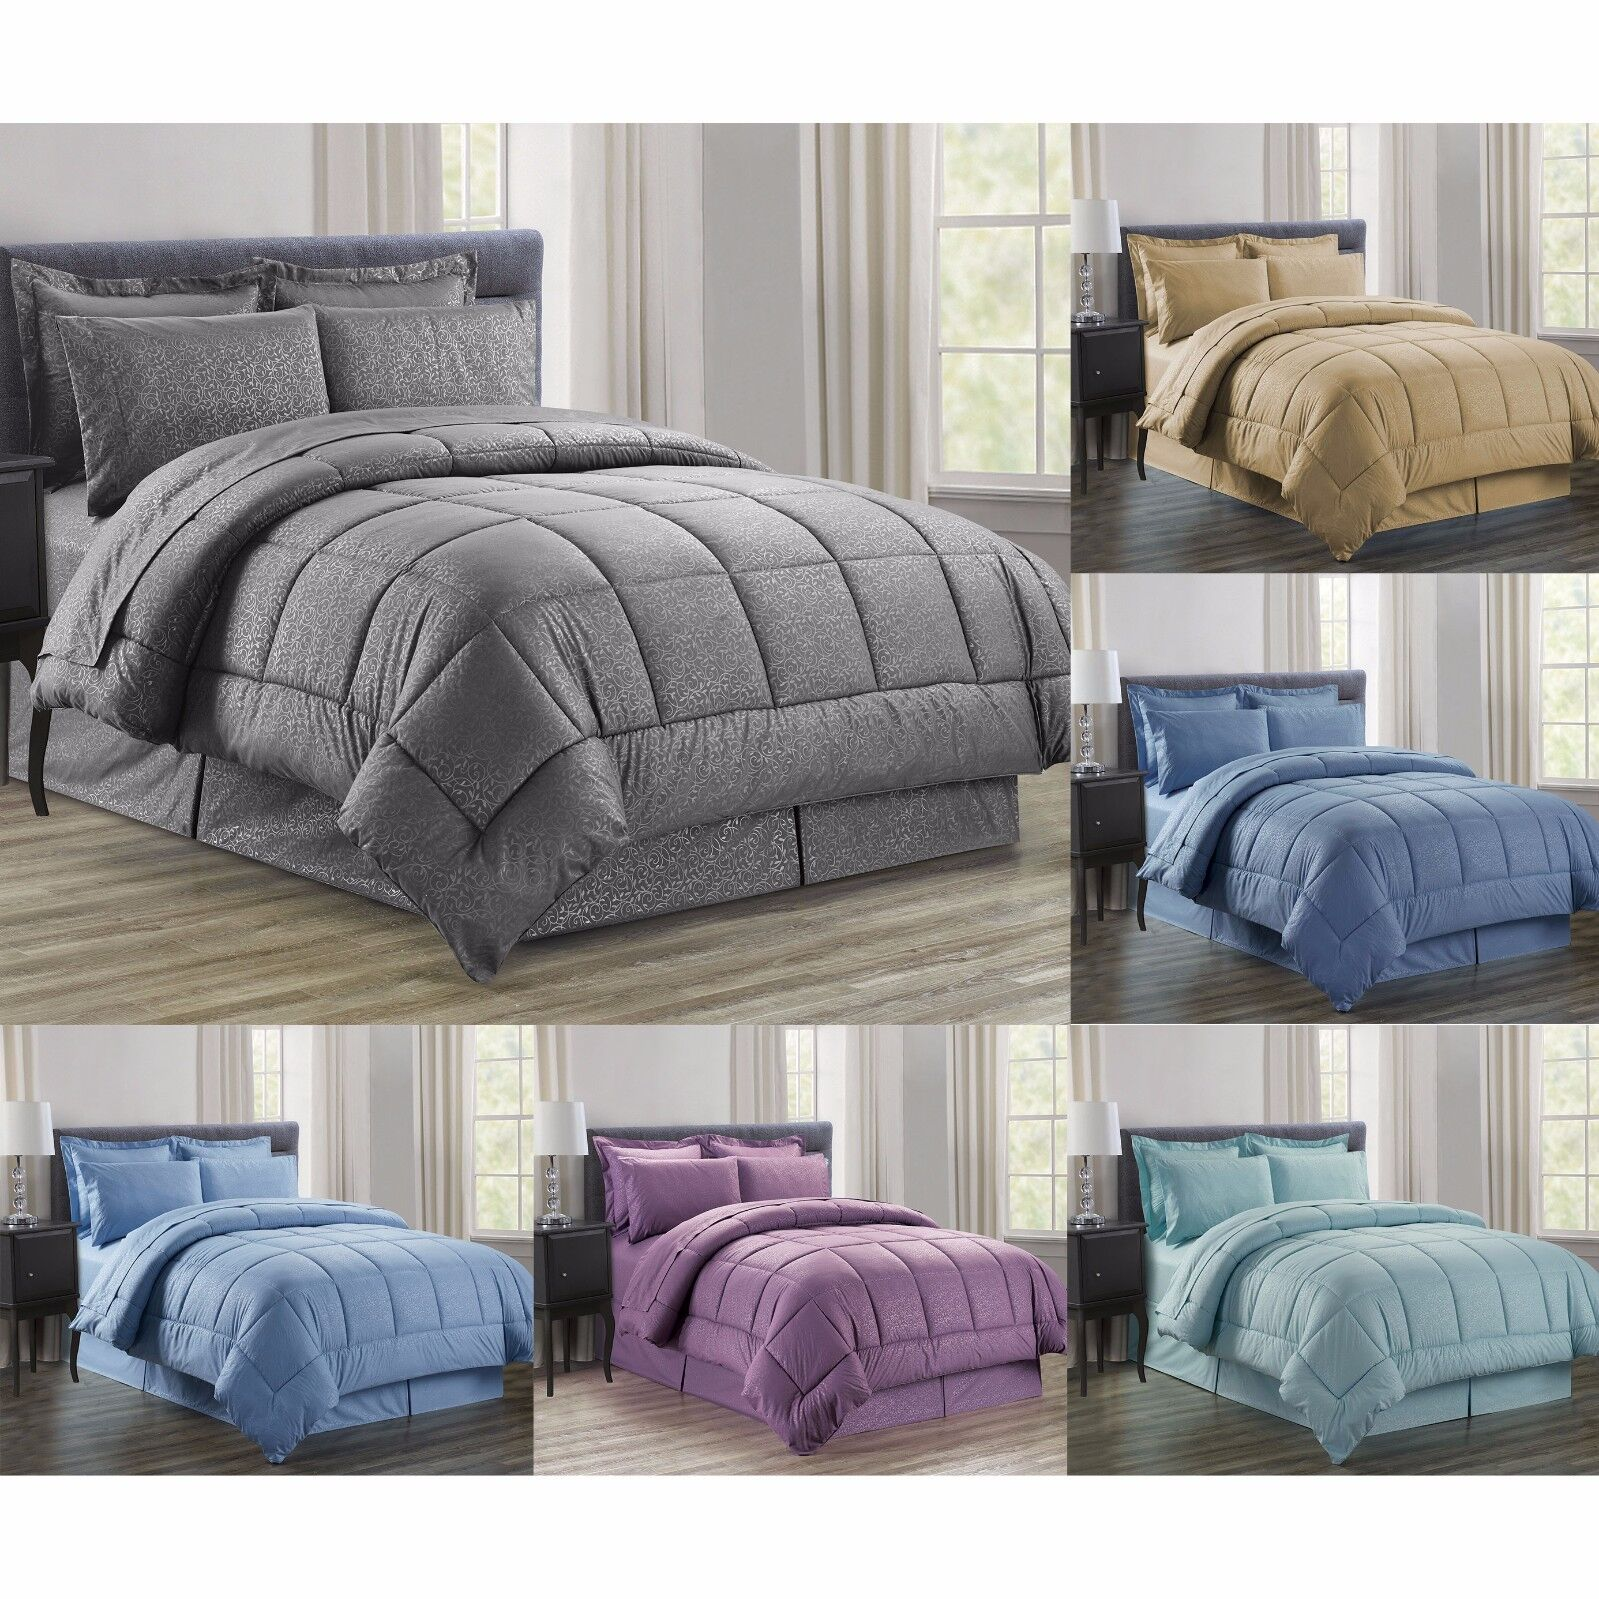 8 PC Vine Down Alternative Bed in a Bag, Comforter, Sheets,